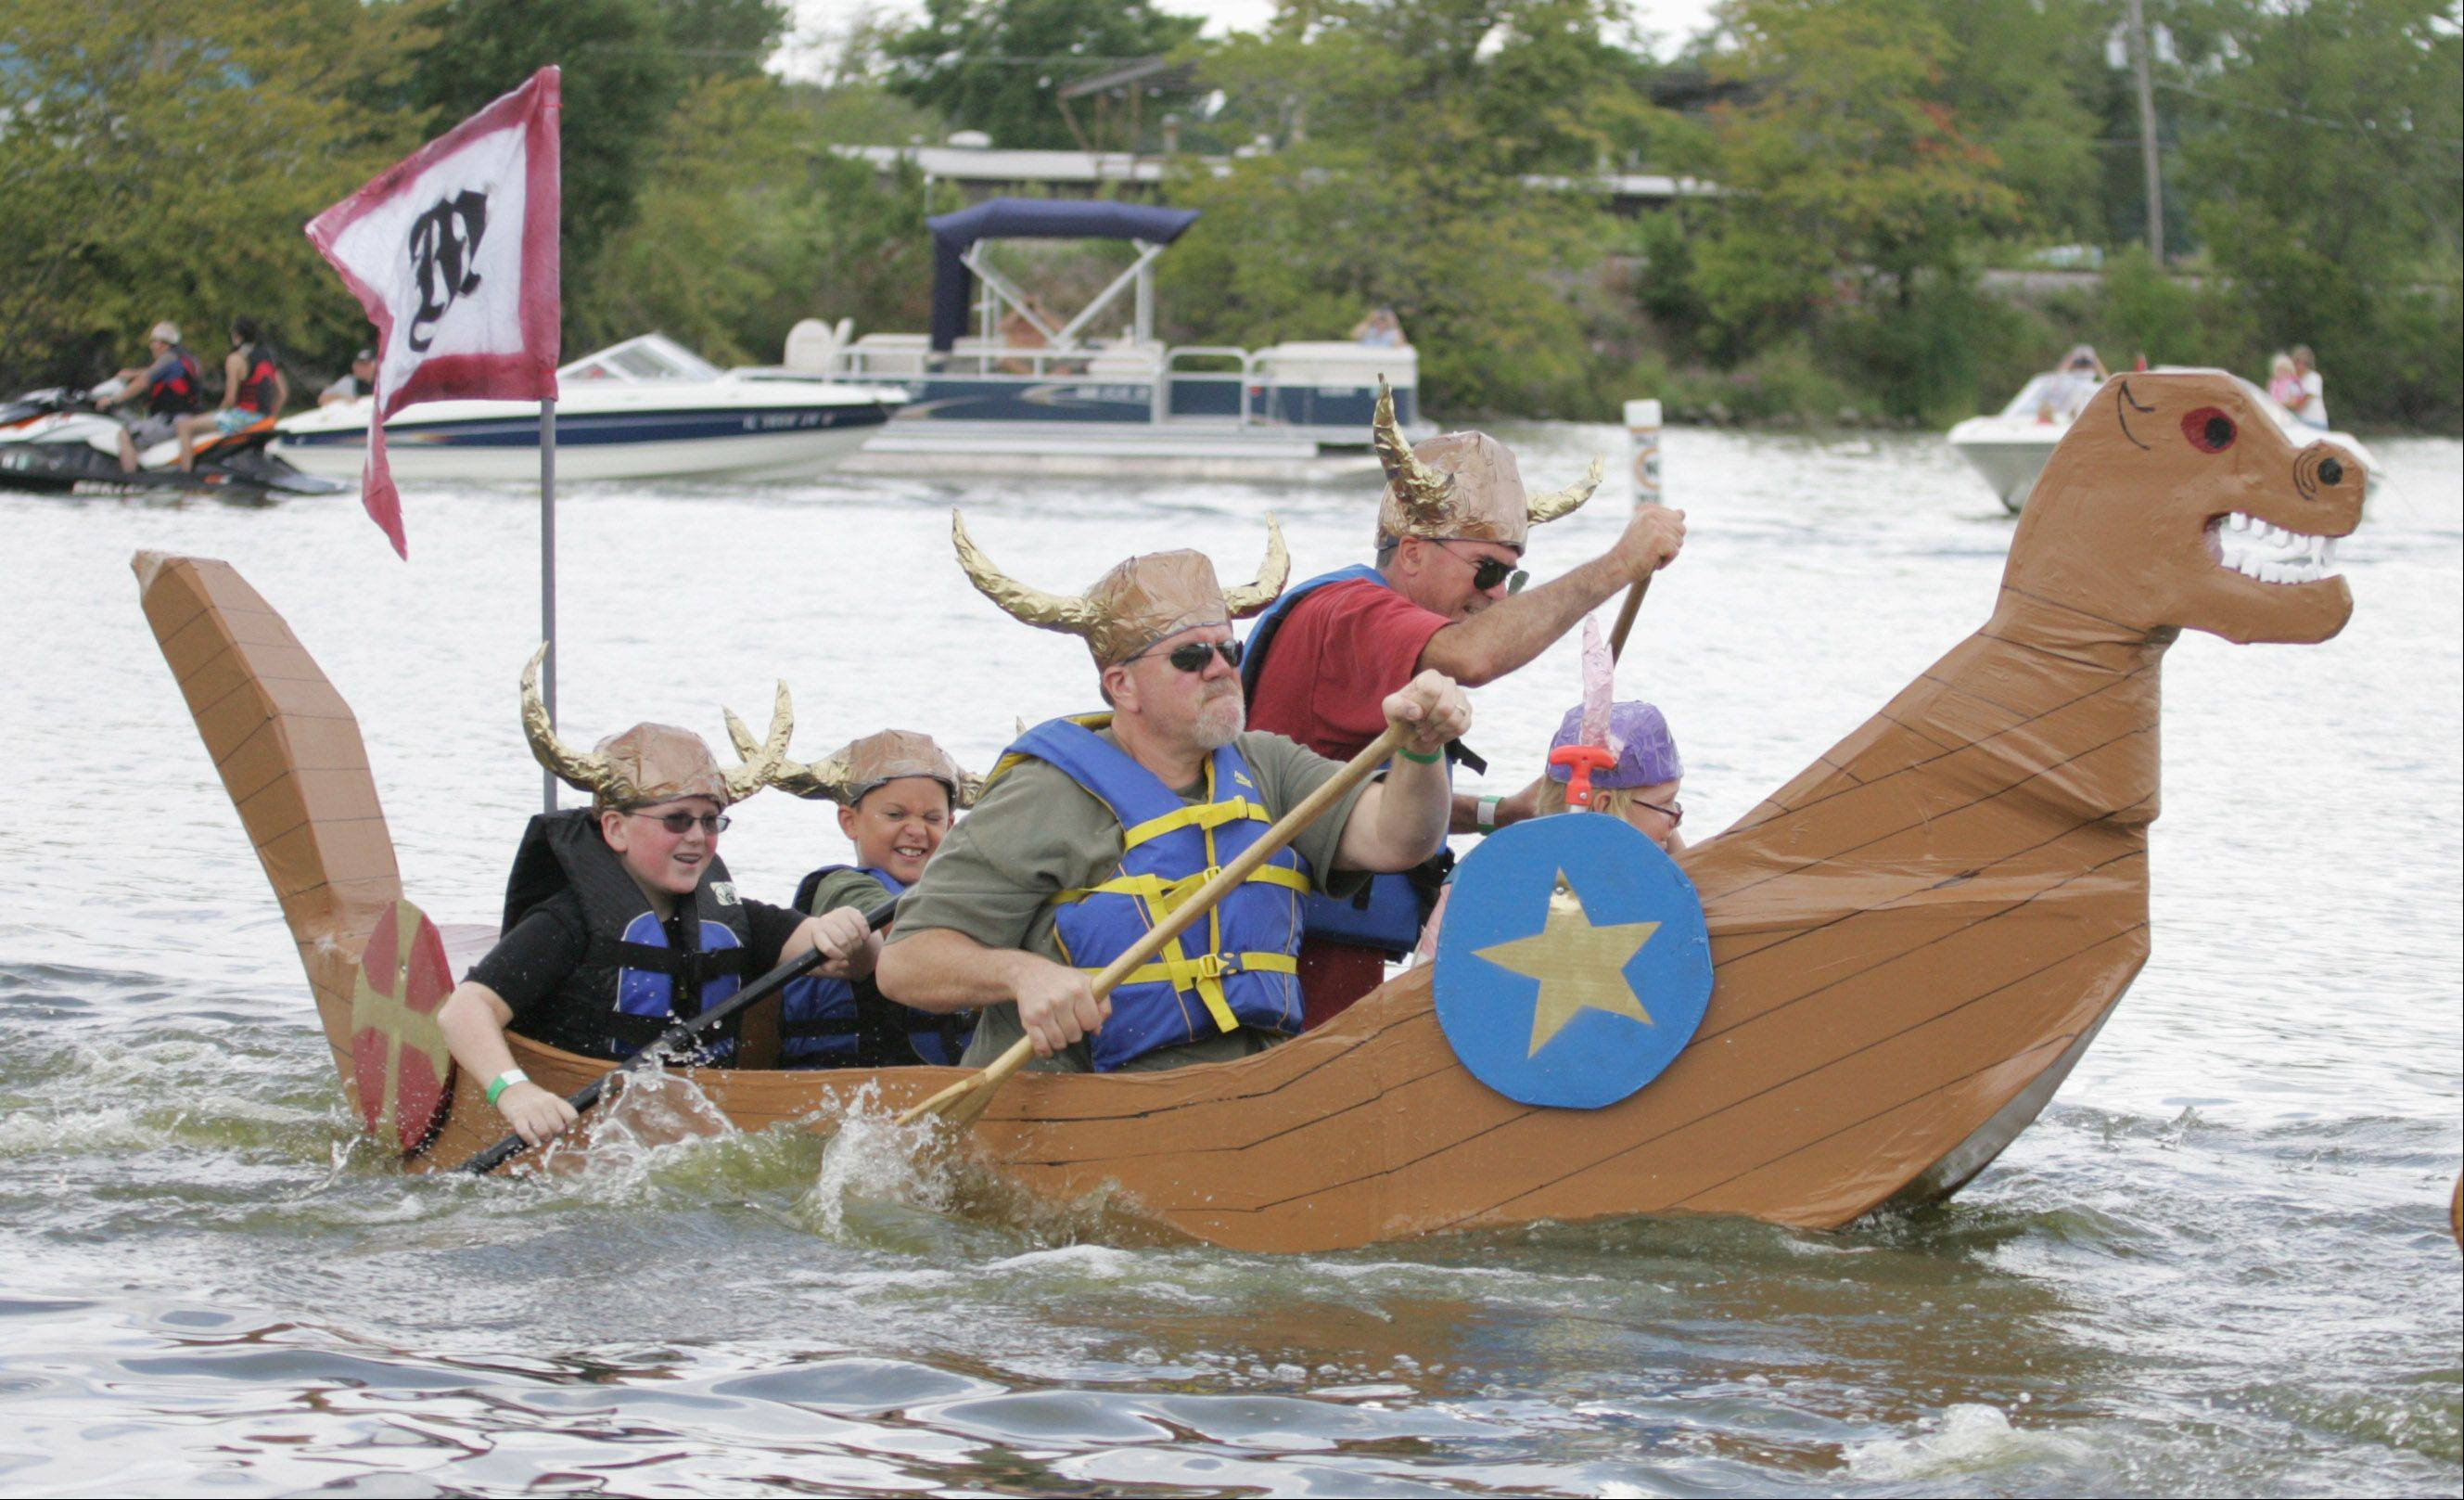 Fox Lake Cardboard Boat Race slated for Sunday at Lakefront Park